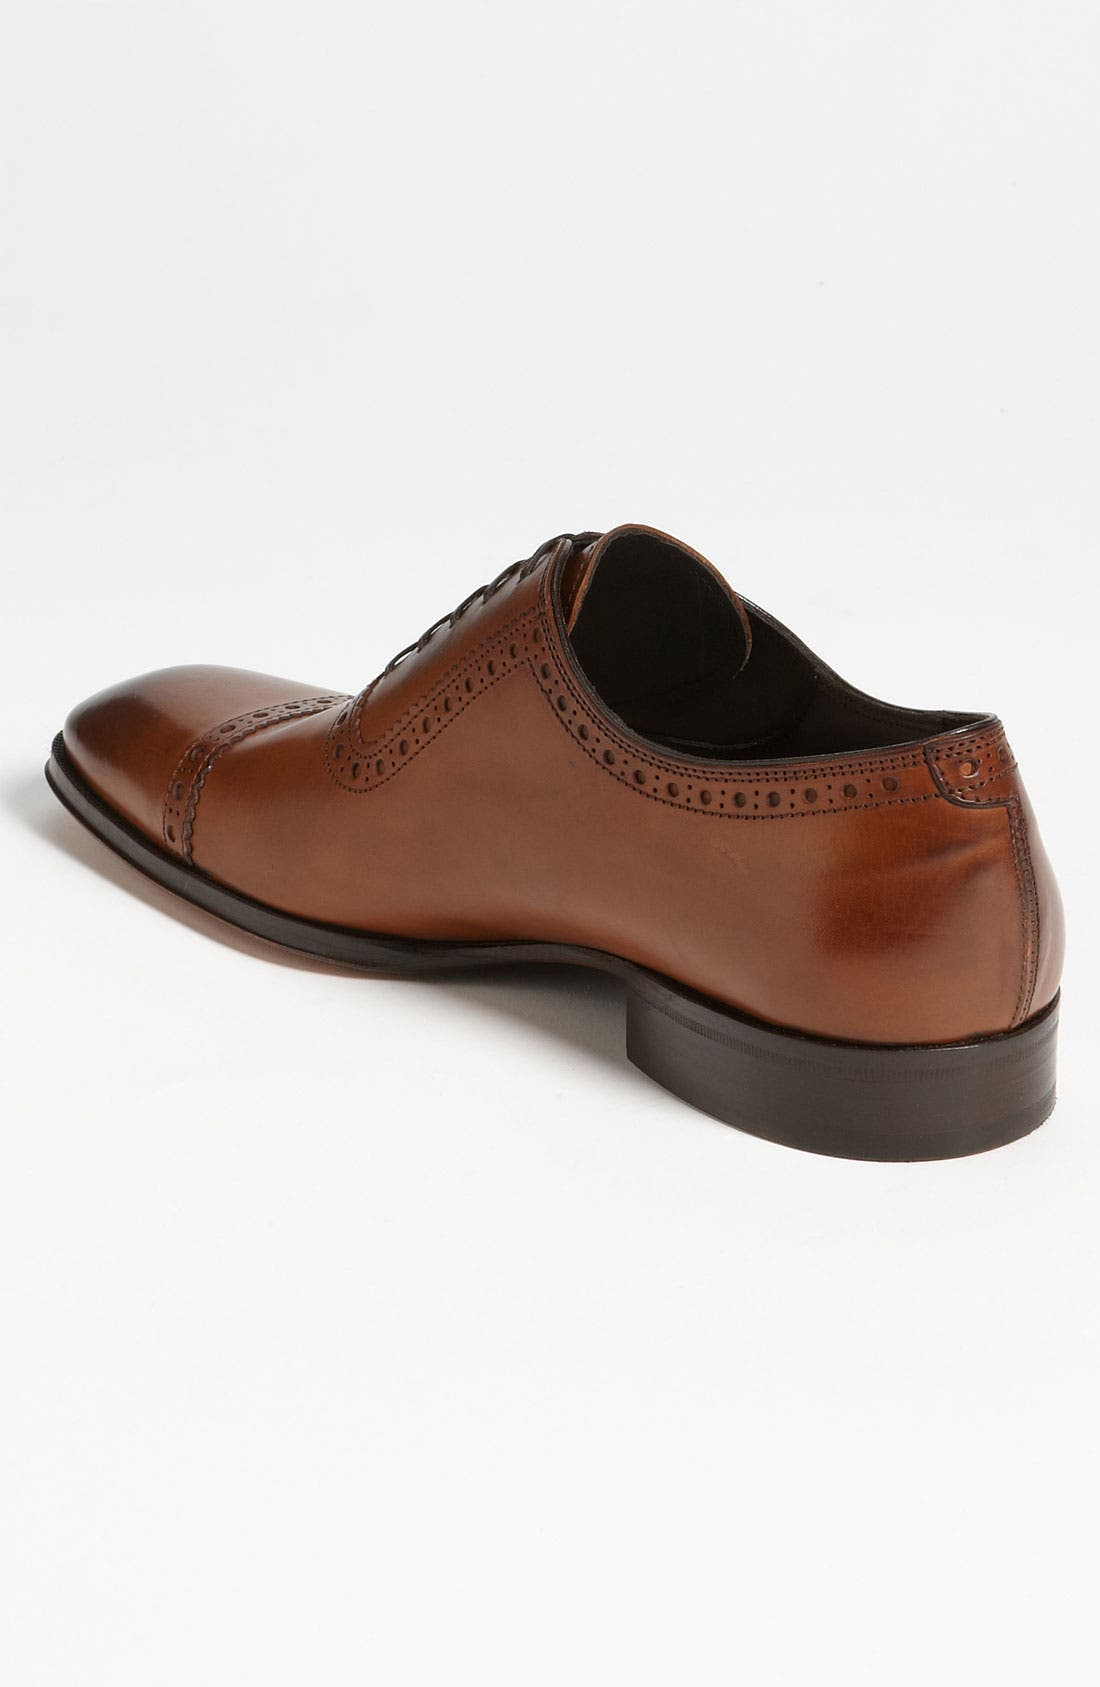 Alternate Image 2  - To Boot New York 'Warwick' Cap Toe Oxford